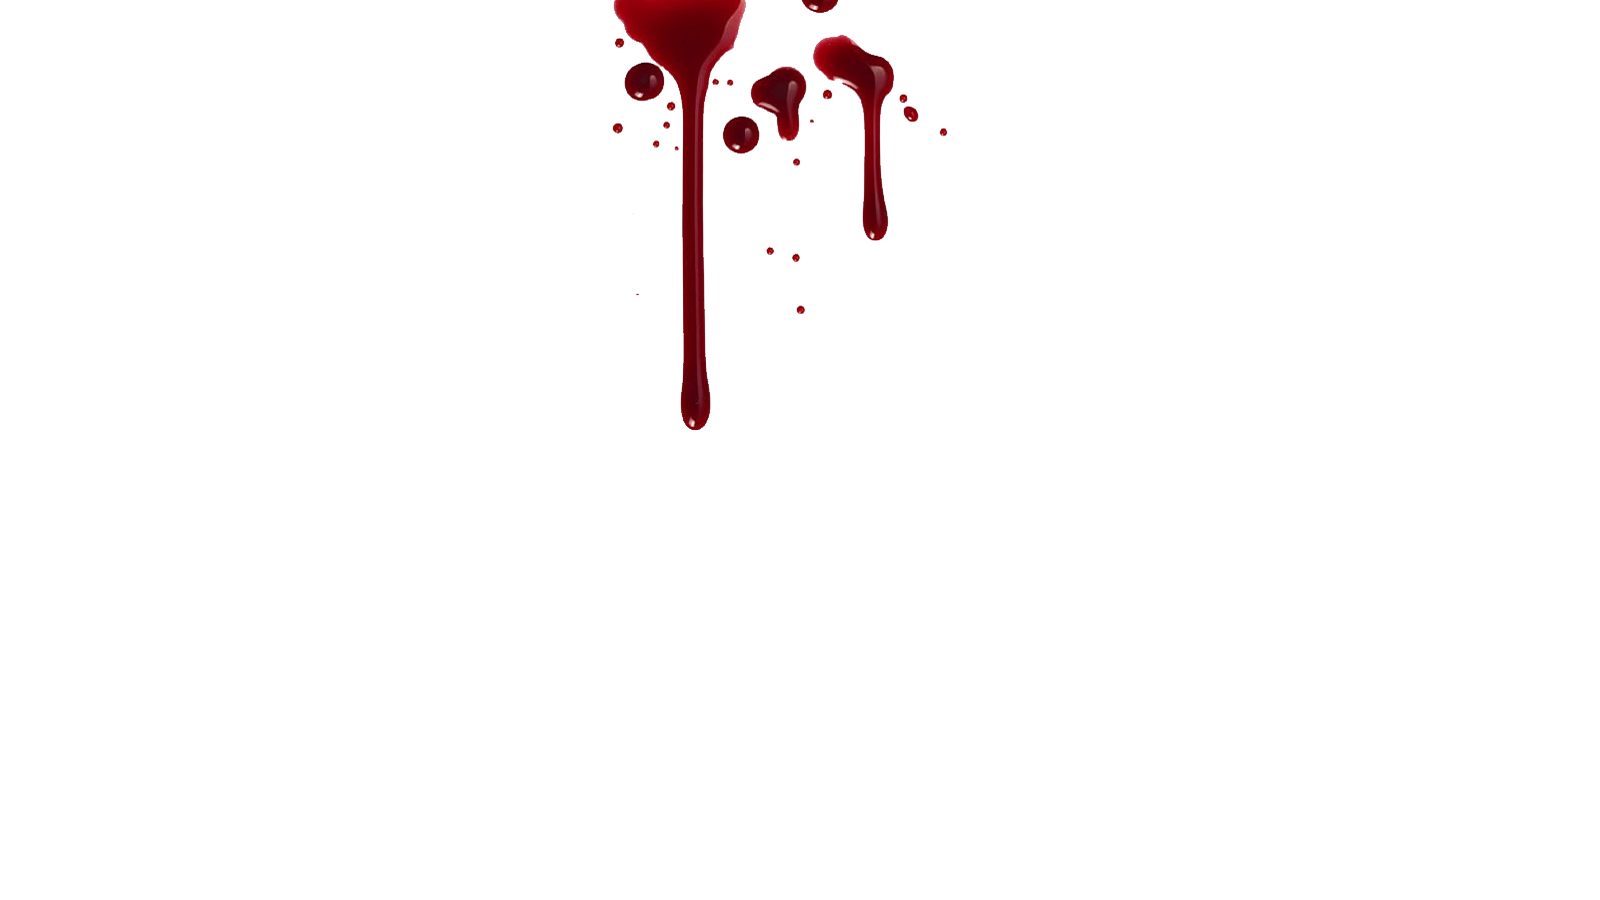 Blood Drip wallpaper 150404